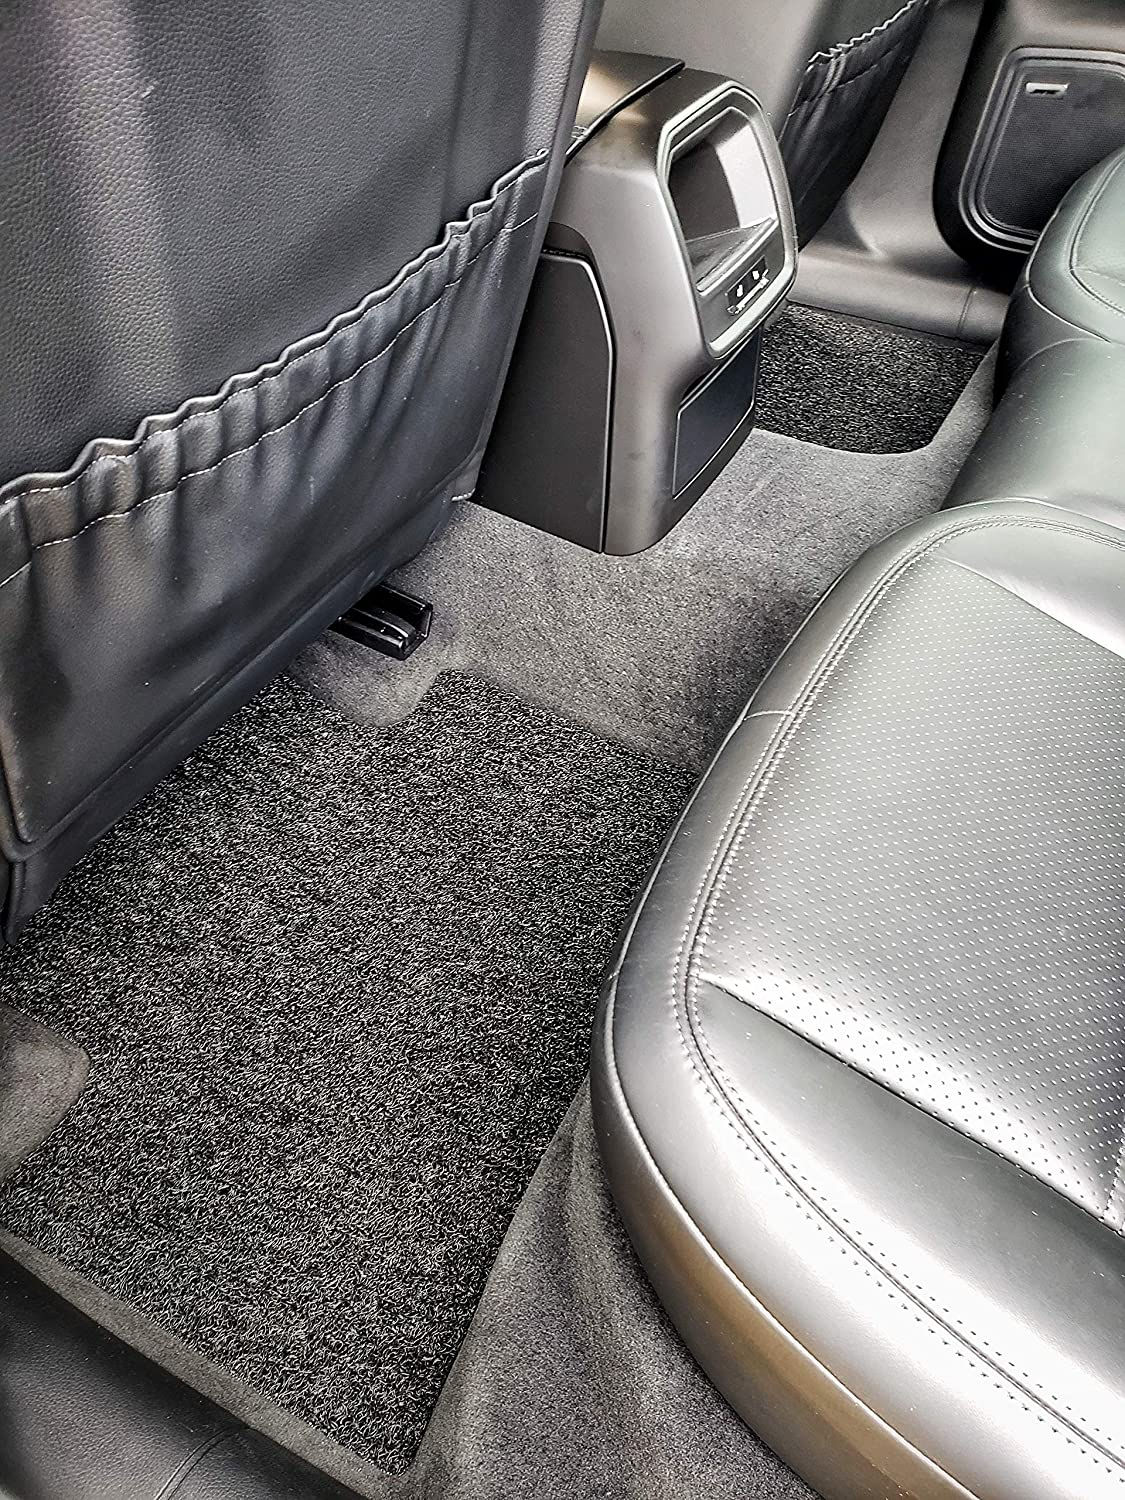 Autotech Zone Heavy Duty Custom Fit Car Floor Mat Compatible with 2018-2019 Nissan Leaf Hatchback Black All Weather Protector 4 Pieces Set